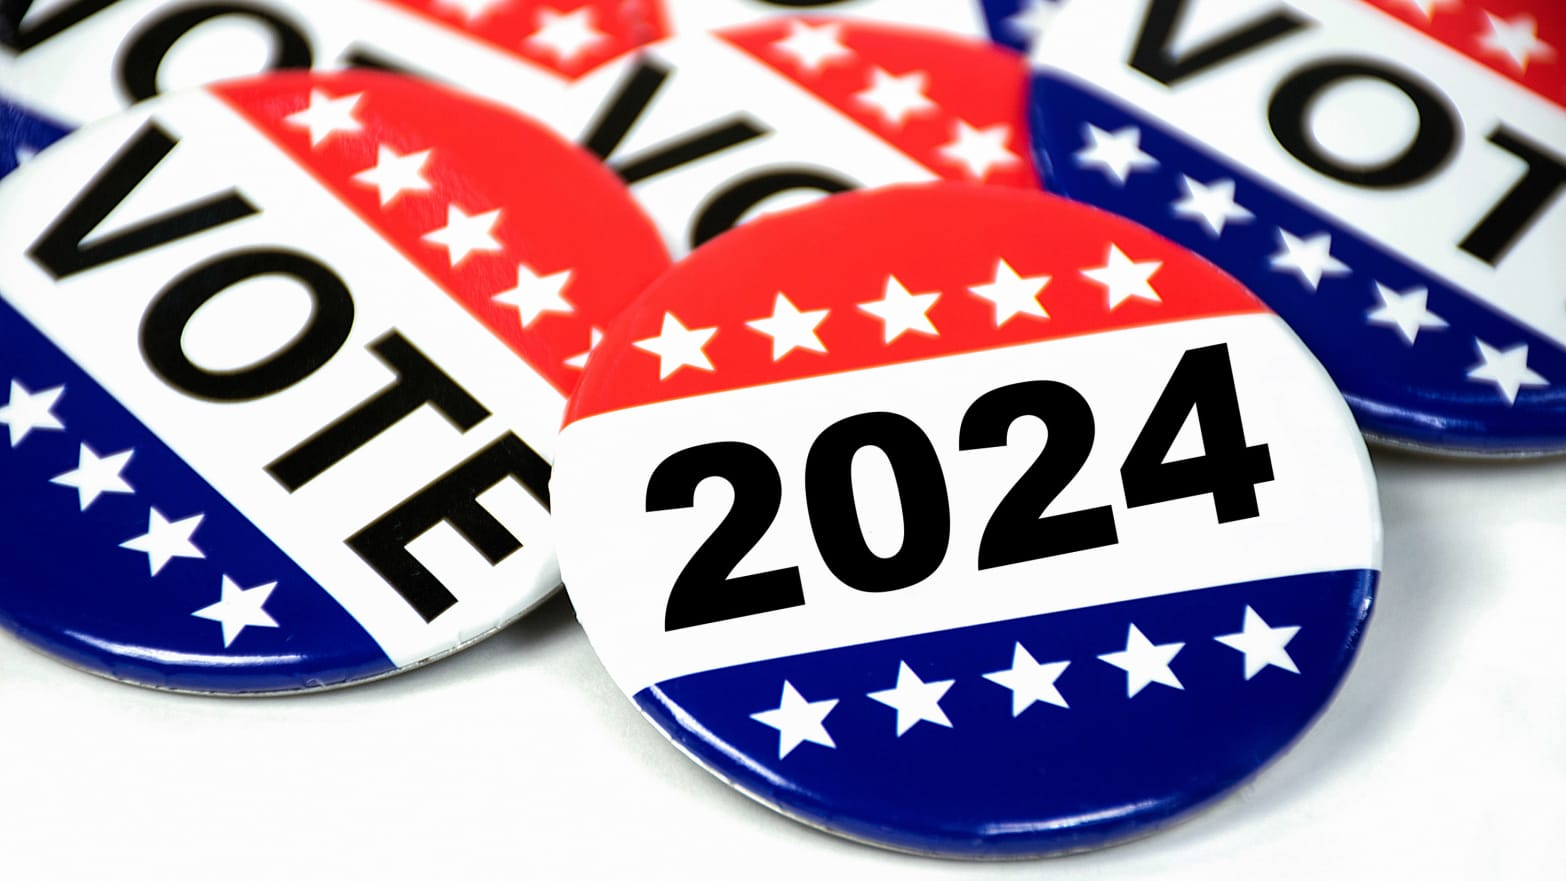 Department of Commerce v. New York: Supreme Court Case Could Decide 2024 Election